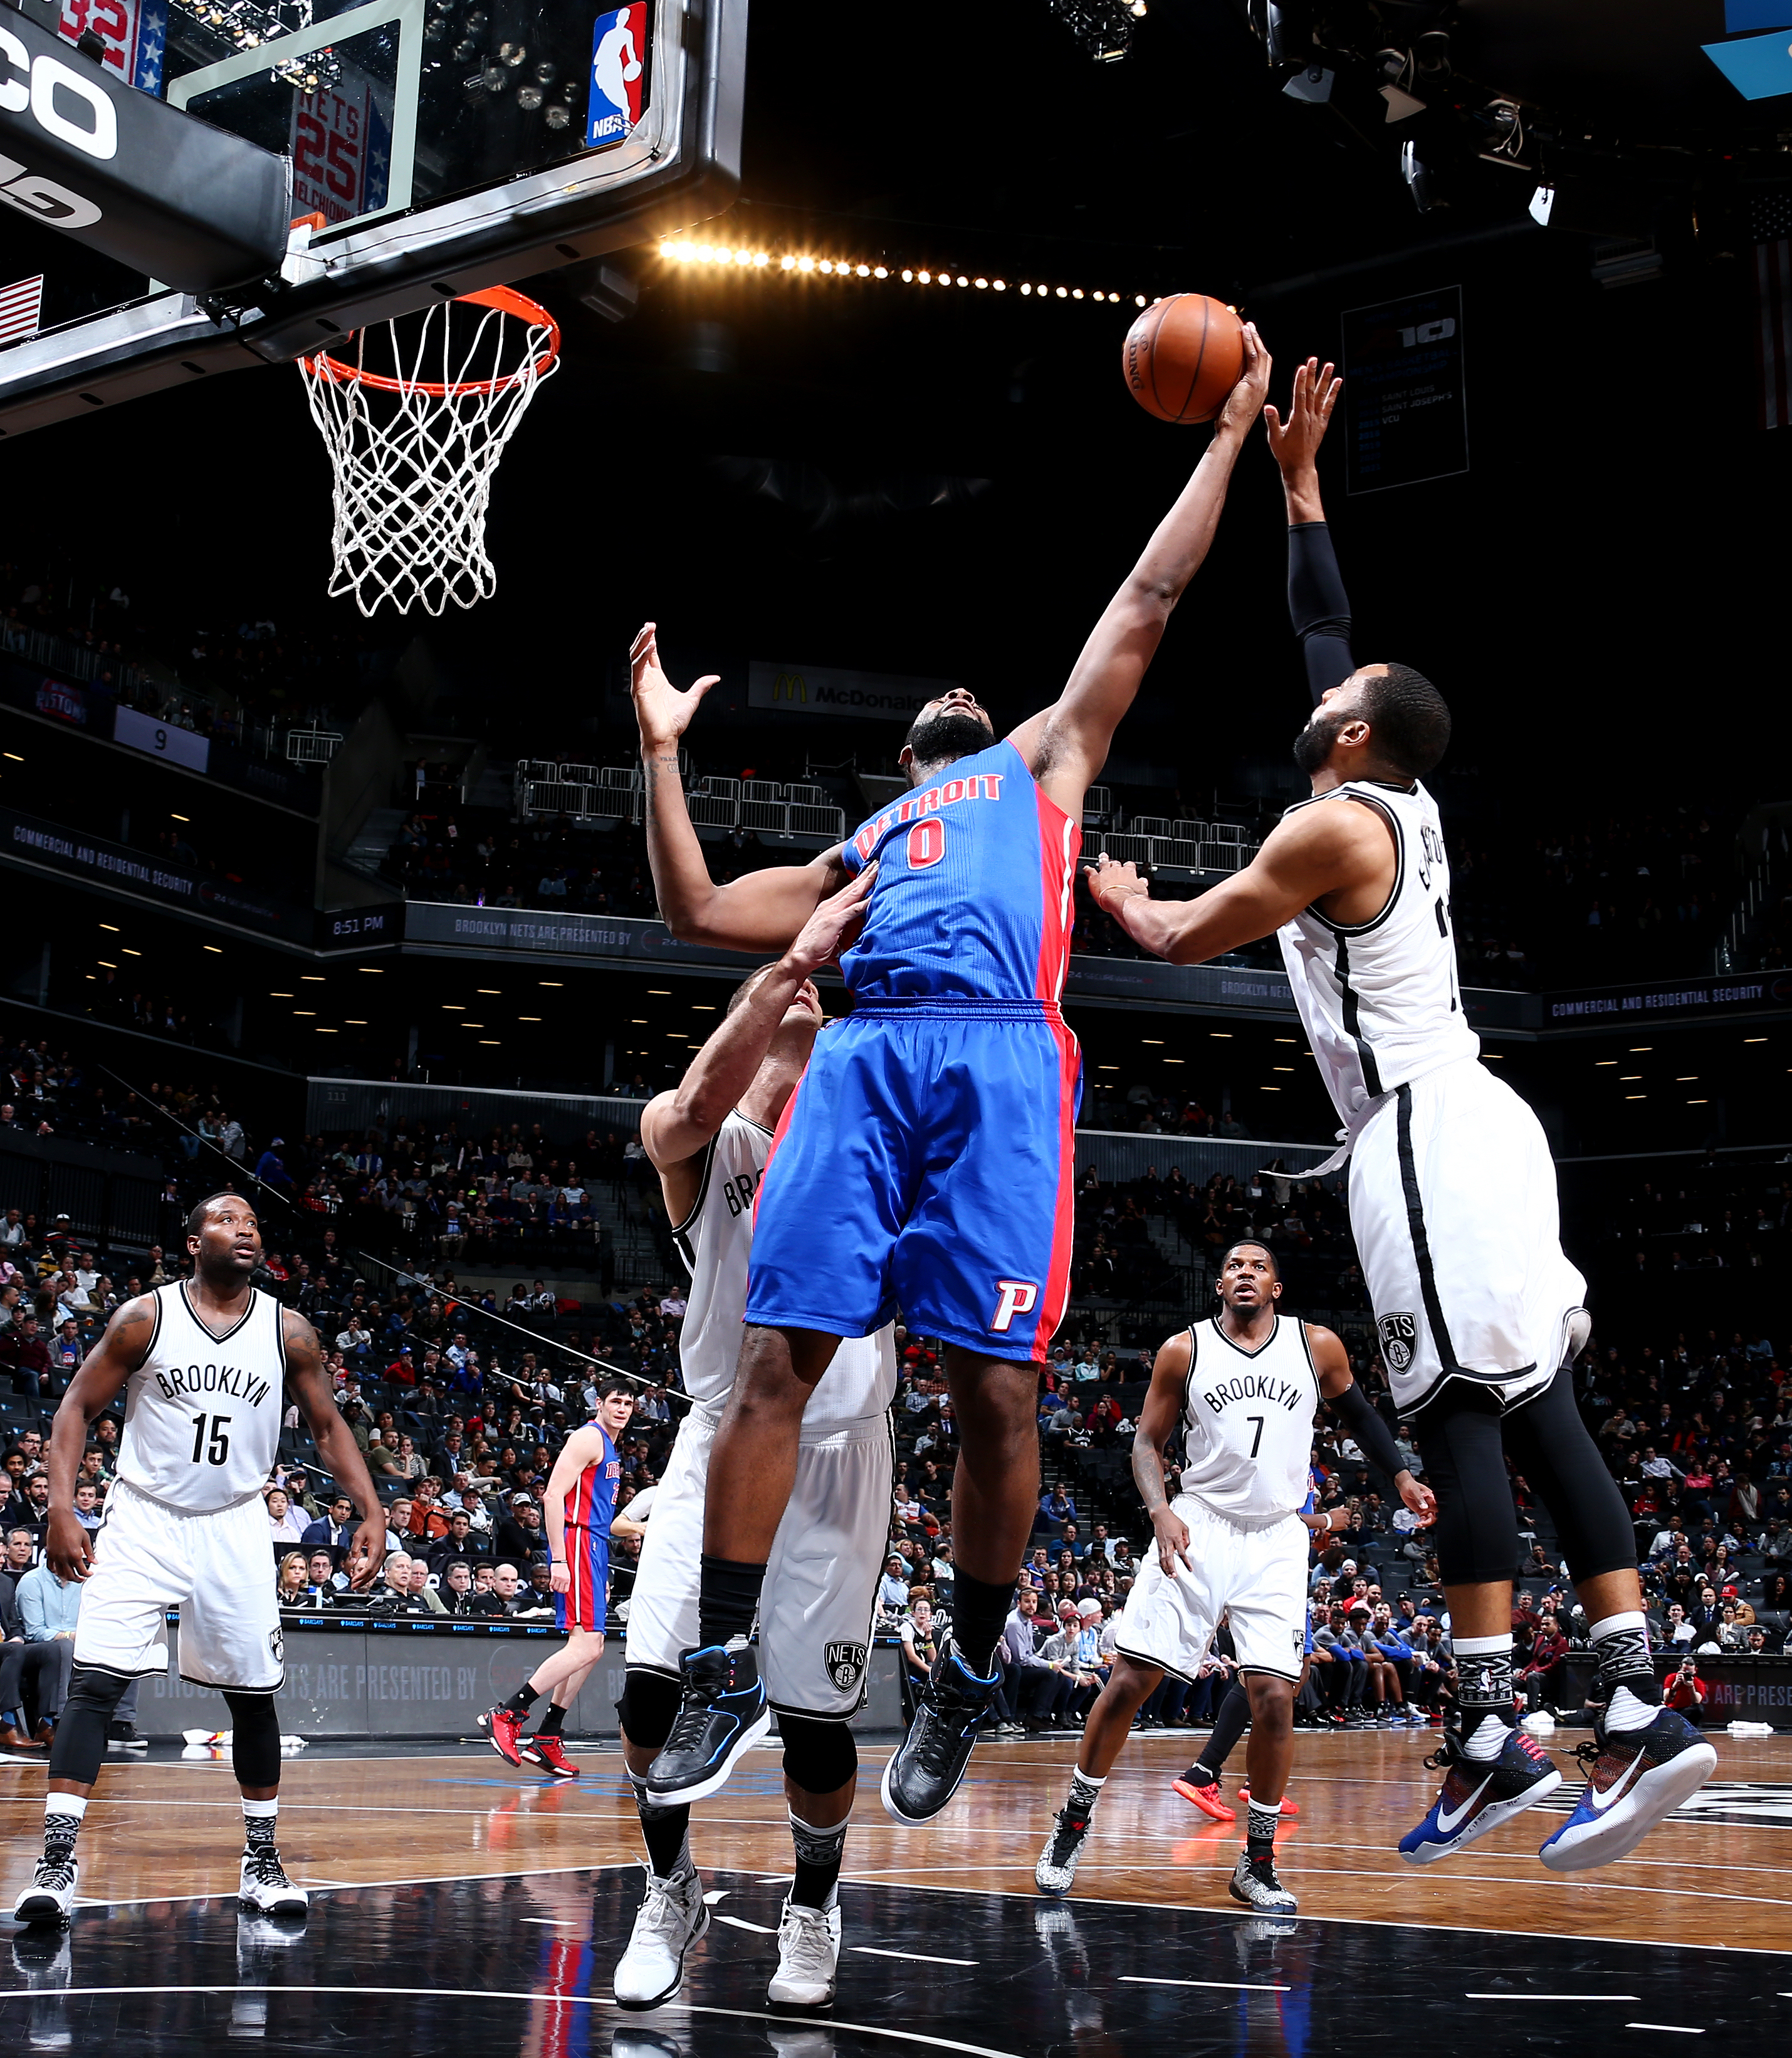 BROOKLYN, NY - FEBRUARY 1: Andre Drummond #0 of the Detroit Pistons grabs the rebound against the Brooklyn Nets on February 1, 2016 at Barclays Center in Brooklyn, New York. (Photo by Nathaniel S. Butler/NBAE via Getty Images)